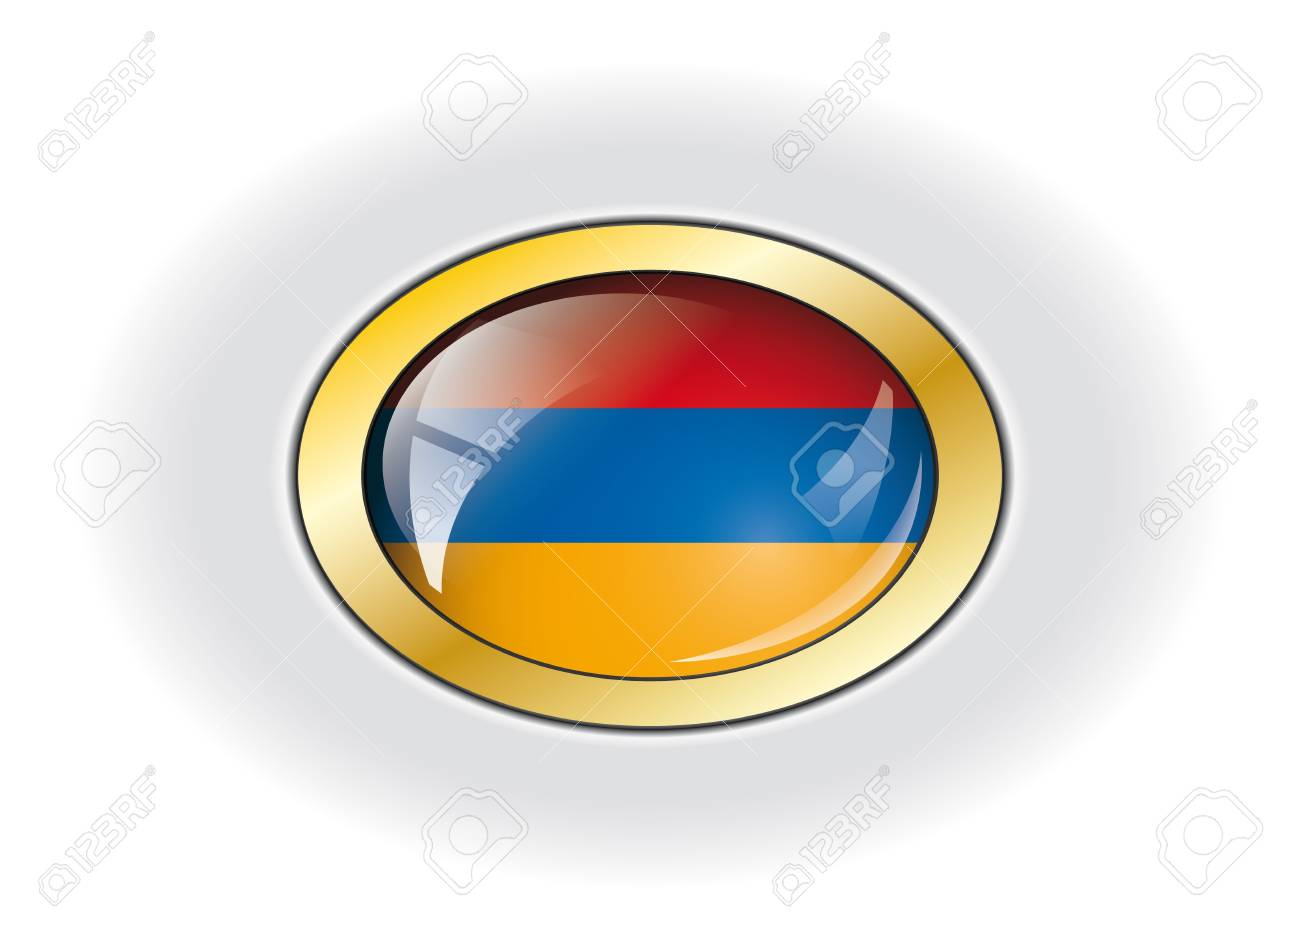 Armenia shiny button flag vector illustration. Isolated abstract object against white background. Stock Illustration - 7984055